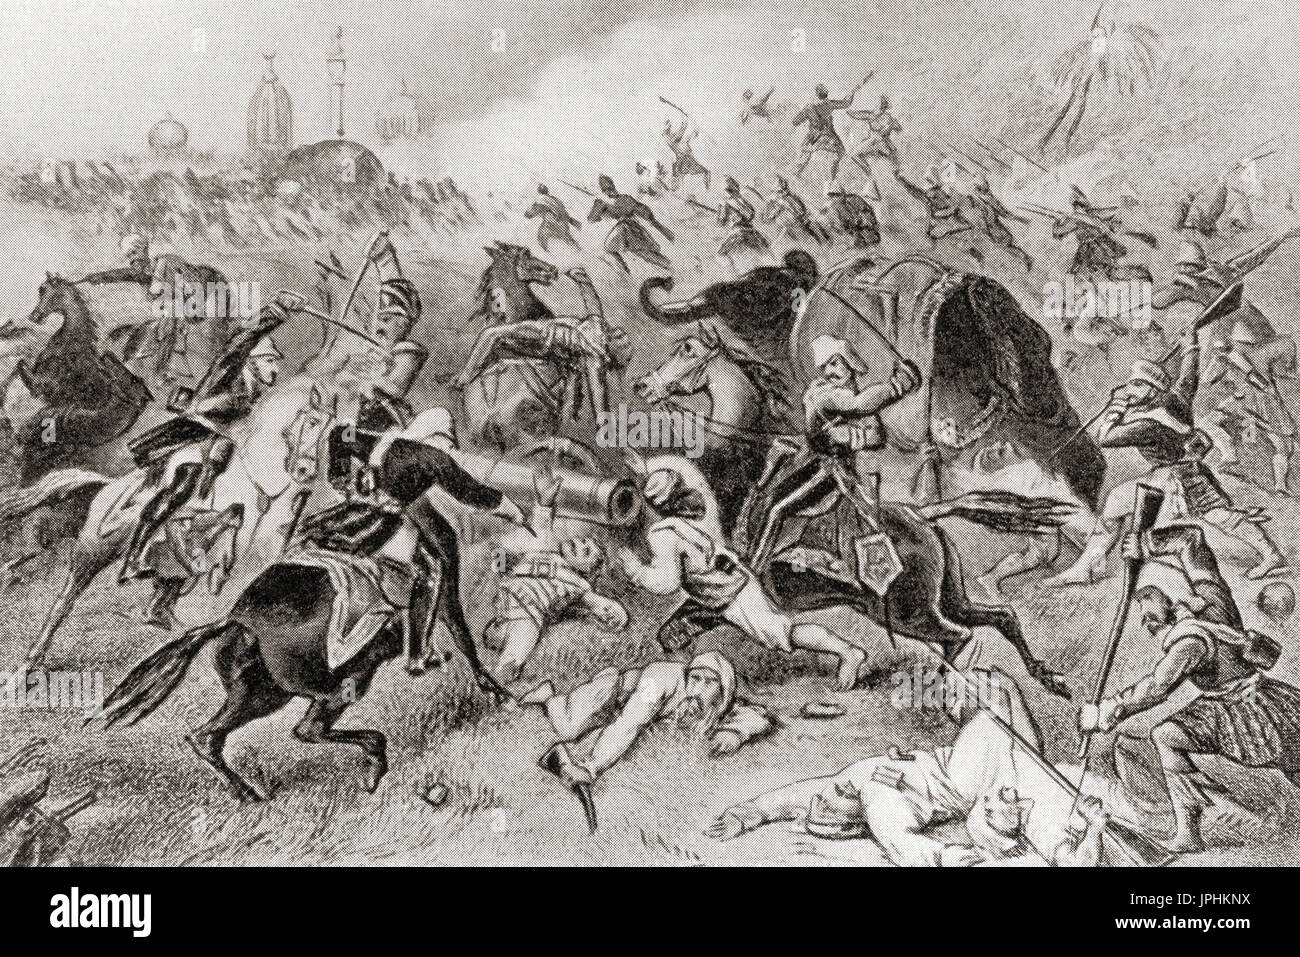 The defeat of Tantya Tope by the British at Cawnpore, India during the Indian Rebellion of 1857.  Ramachandra Pandurang Tope, aka Tatya Tope, Tantya Tope or Tantia Topi, 1814 –  1859.  Indian leader in the Indian Rebellion of 1857 and one of its notable generals.  From Hutchinson's History of the Nations, published 1915. - Stock Image